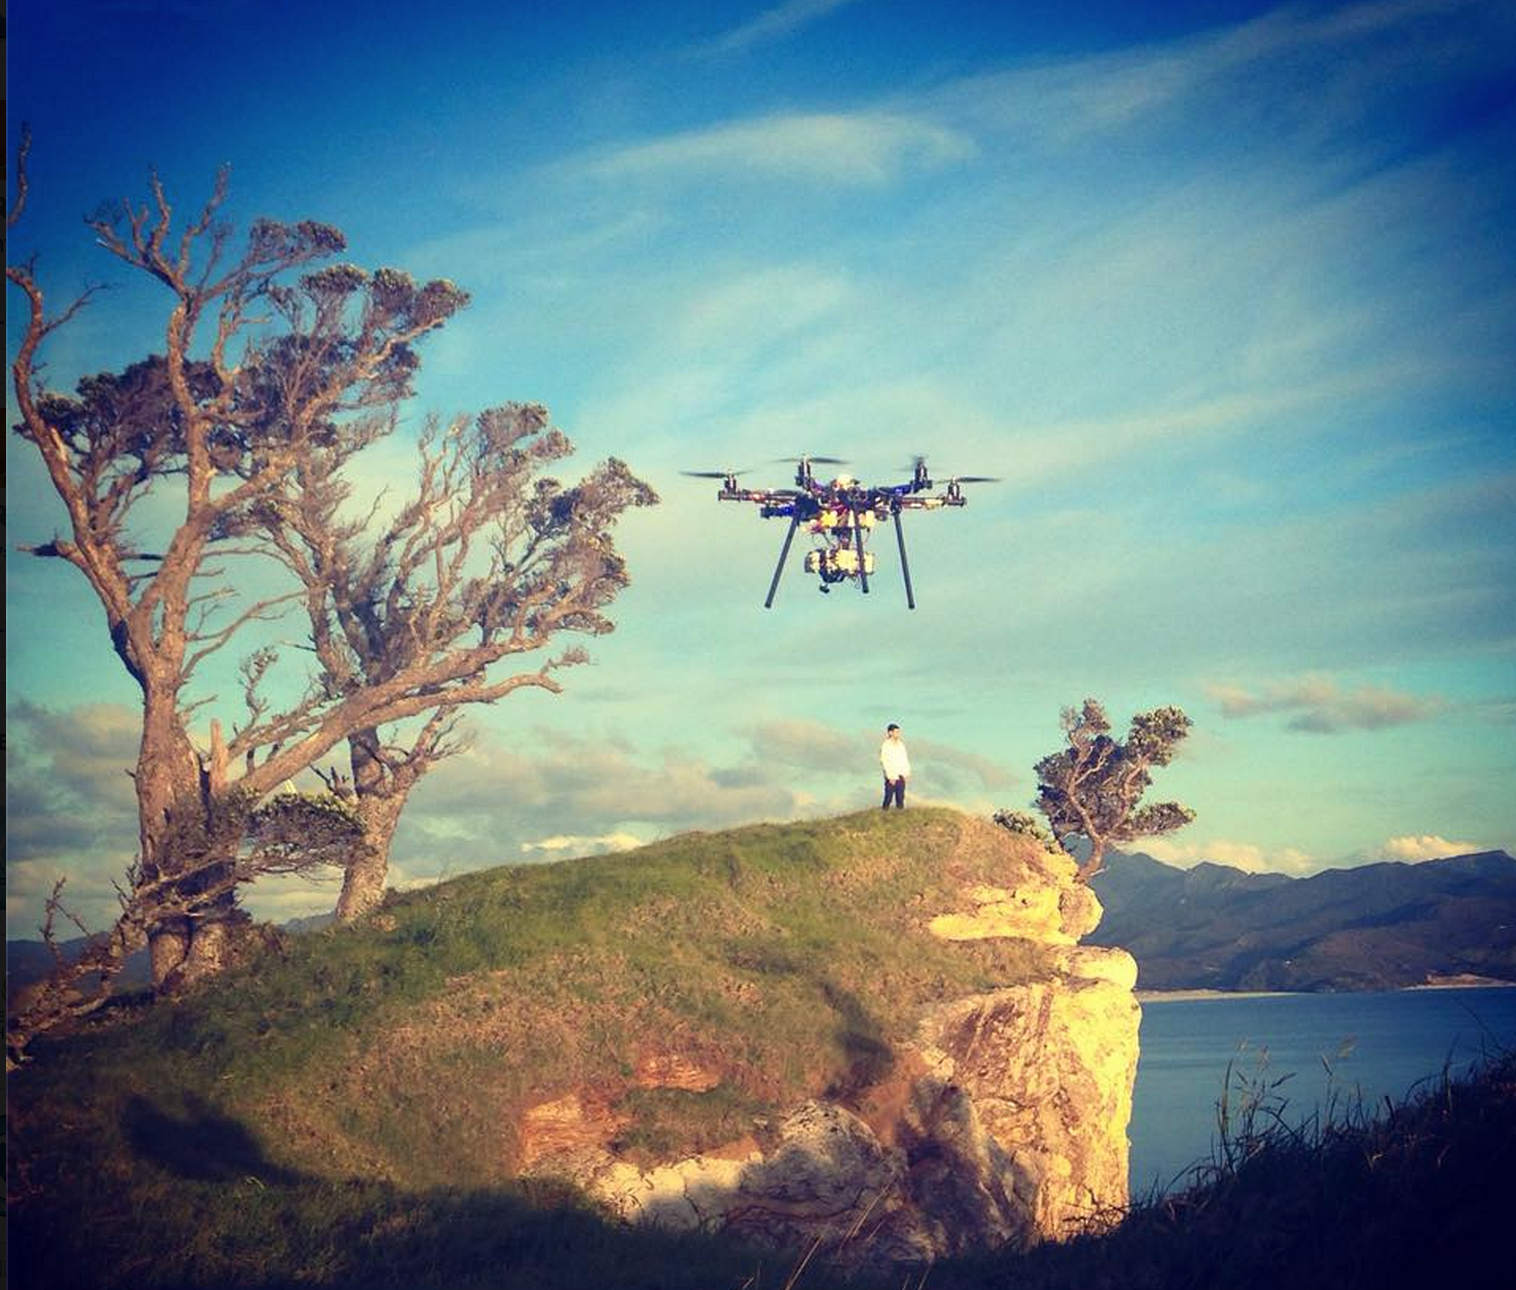 RISKY, on the cliff-tops, Great Barrier Island. An Aerial Vision drone approaches.